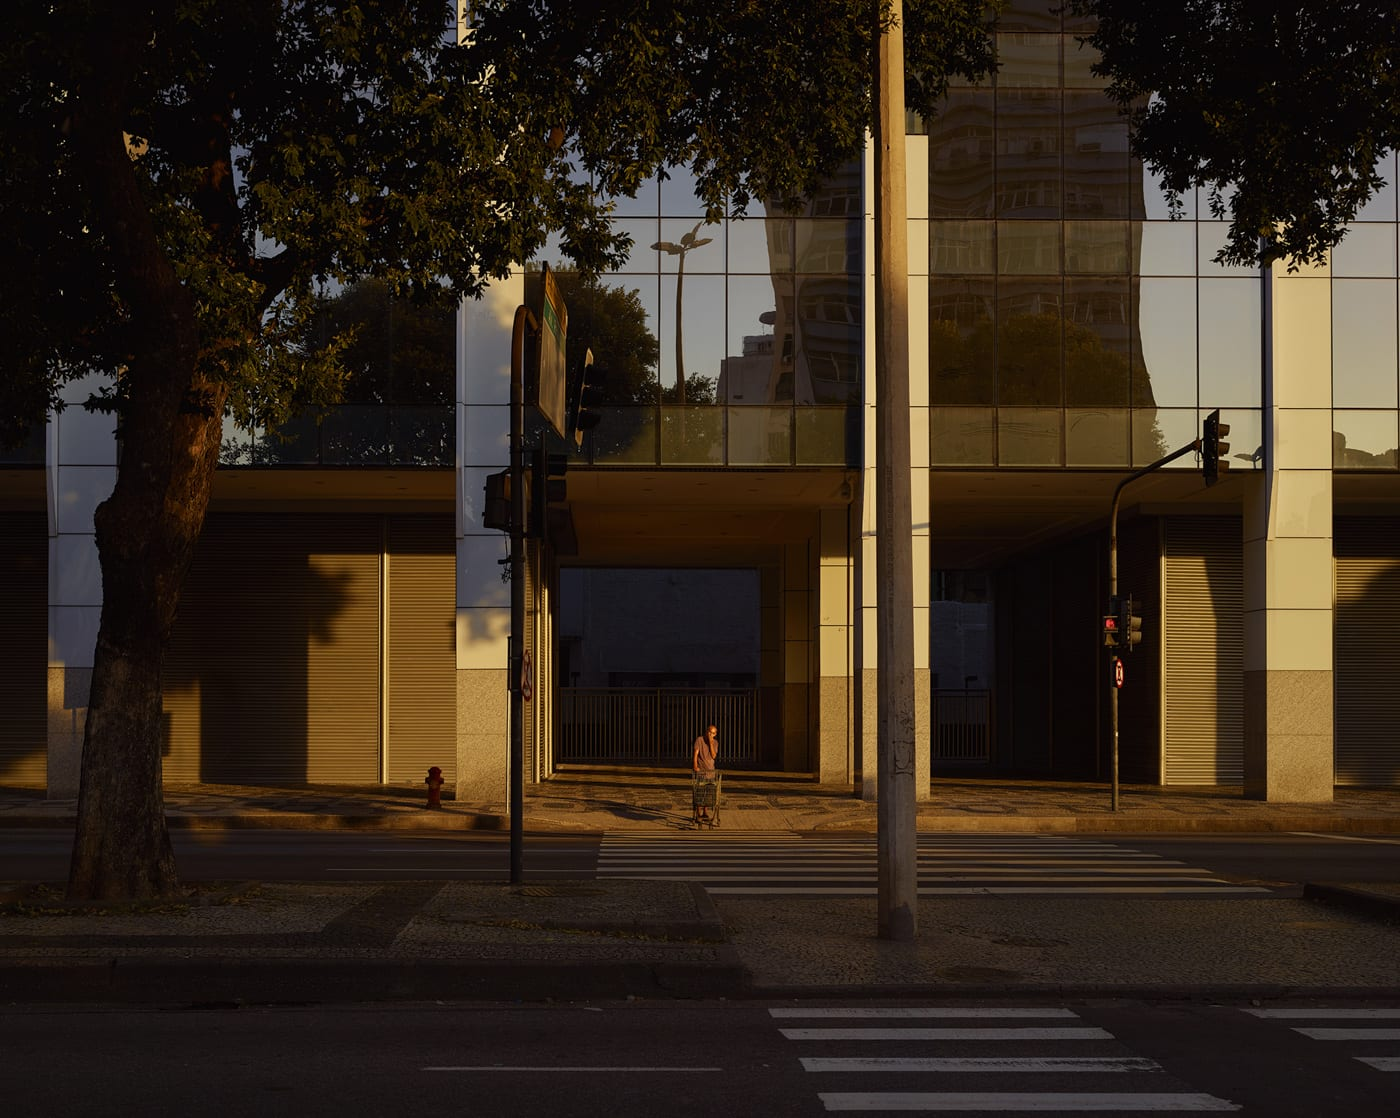 Cross Road Blues (Av. Pres. Vargas Rio Brazil), 2019 Oli Kellett